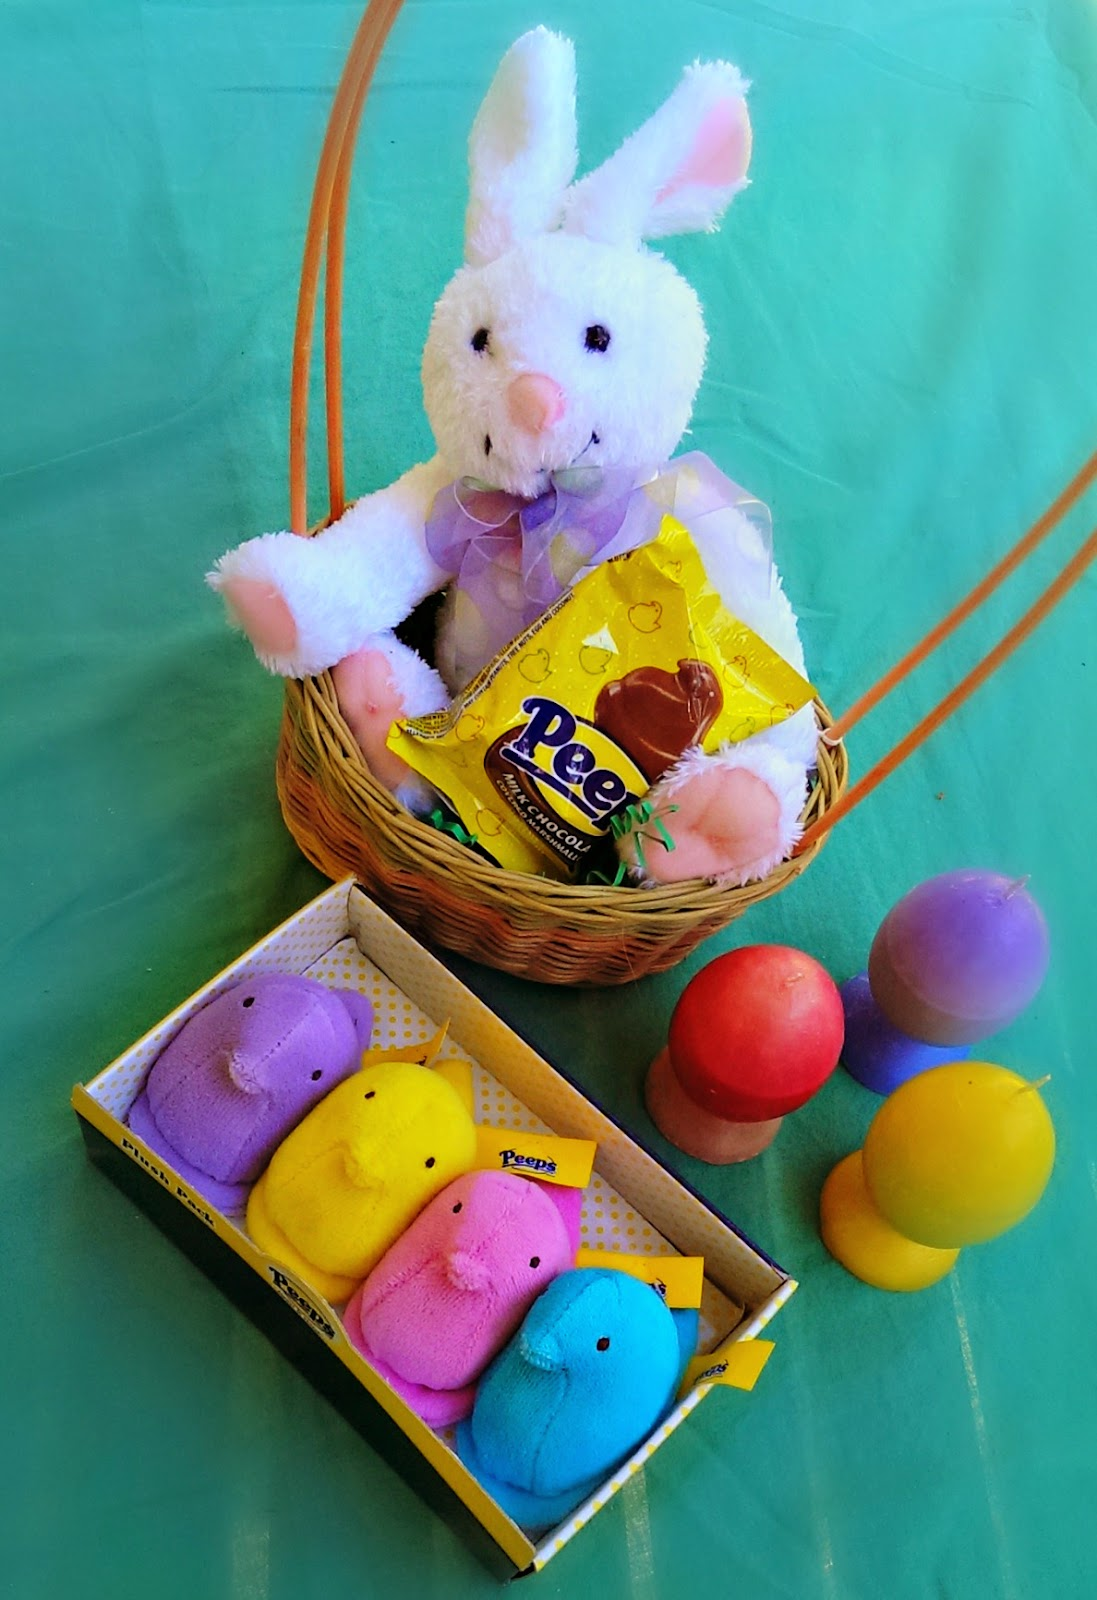 Peeps candy Easter gift baskets